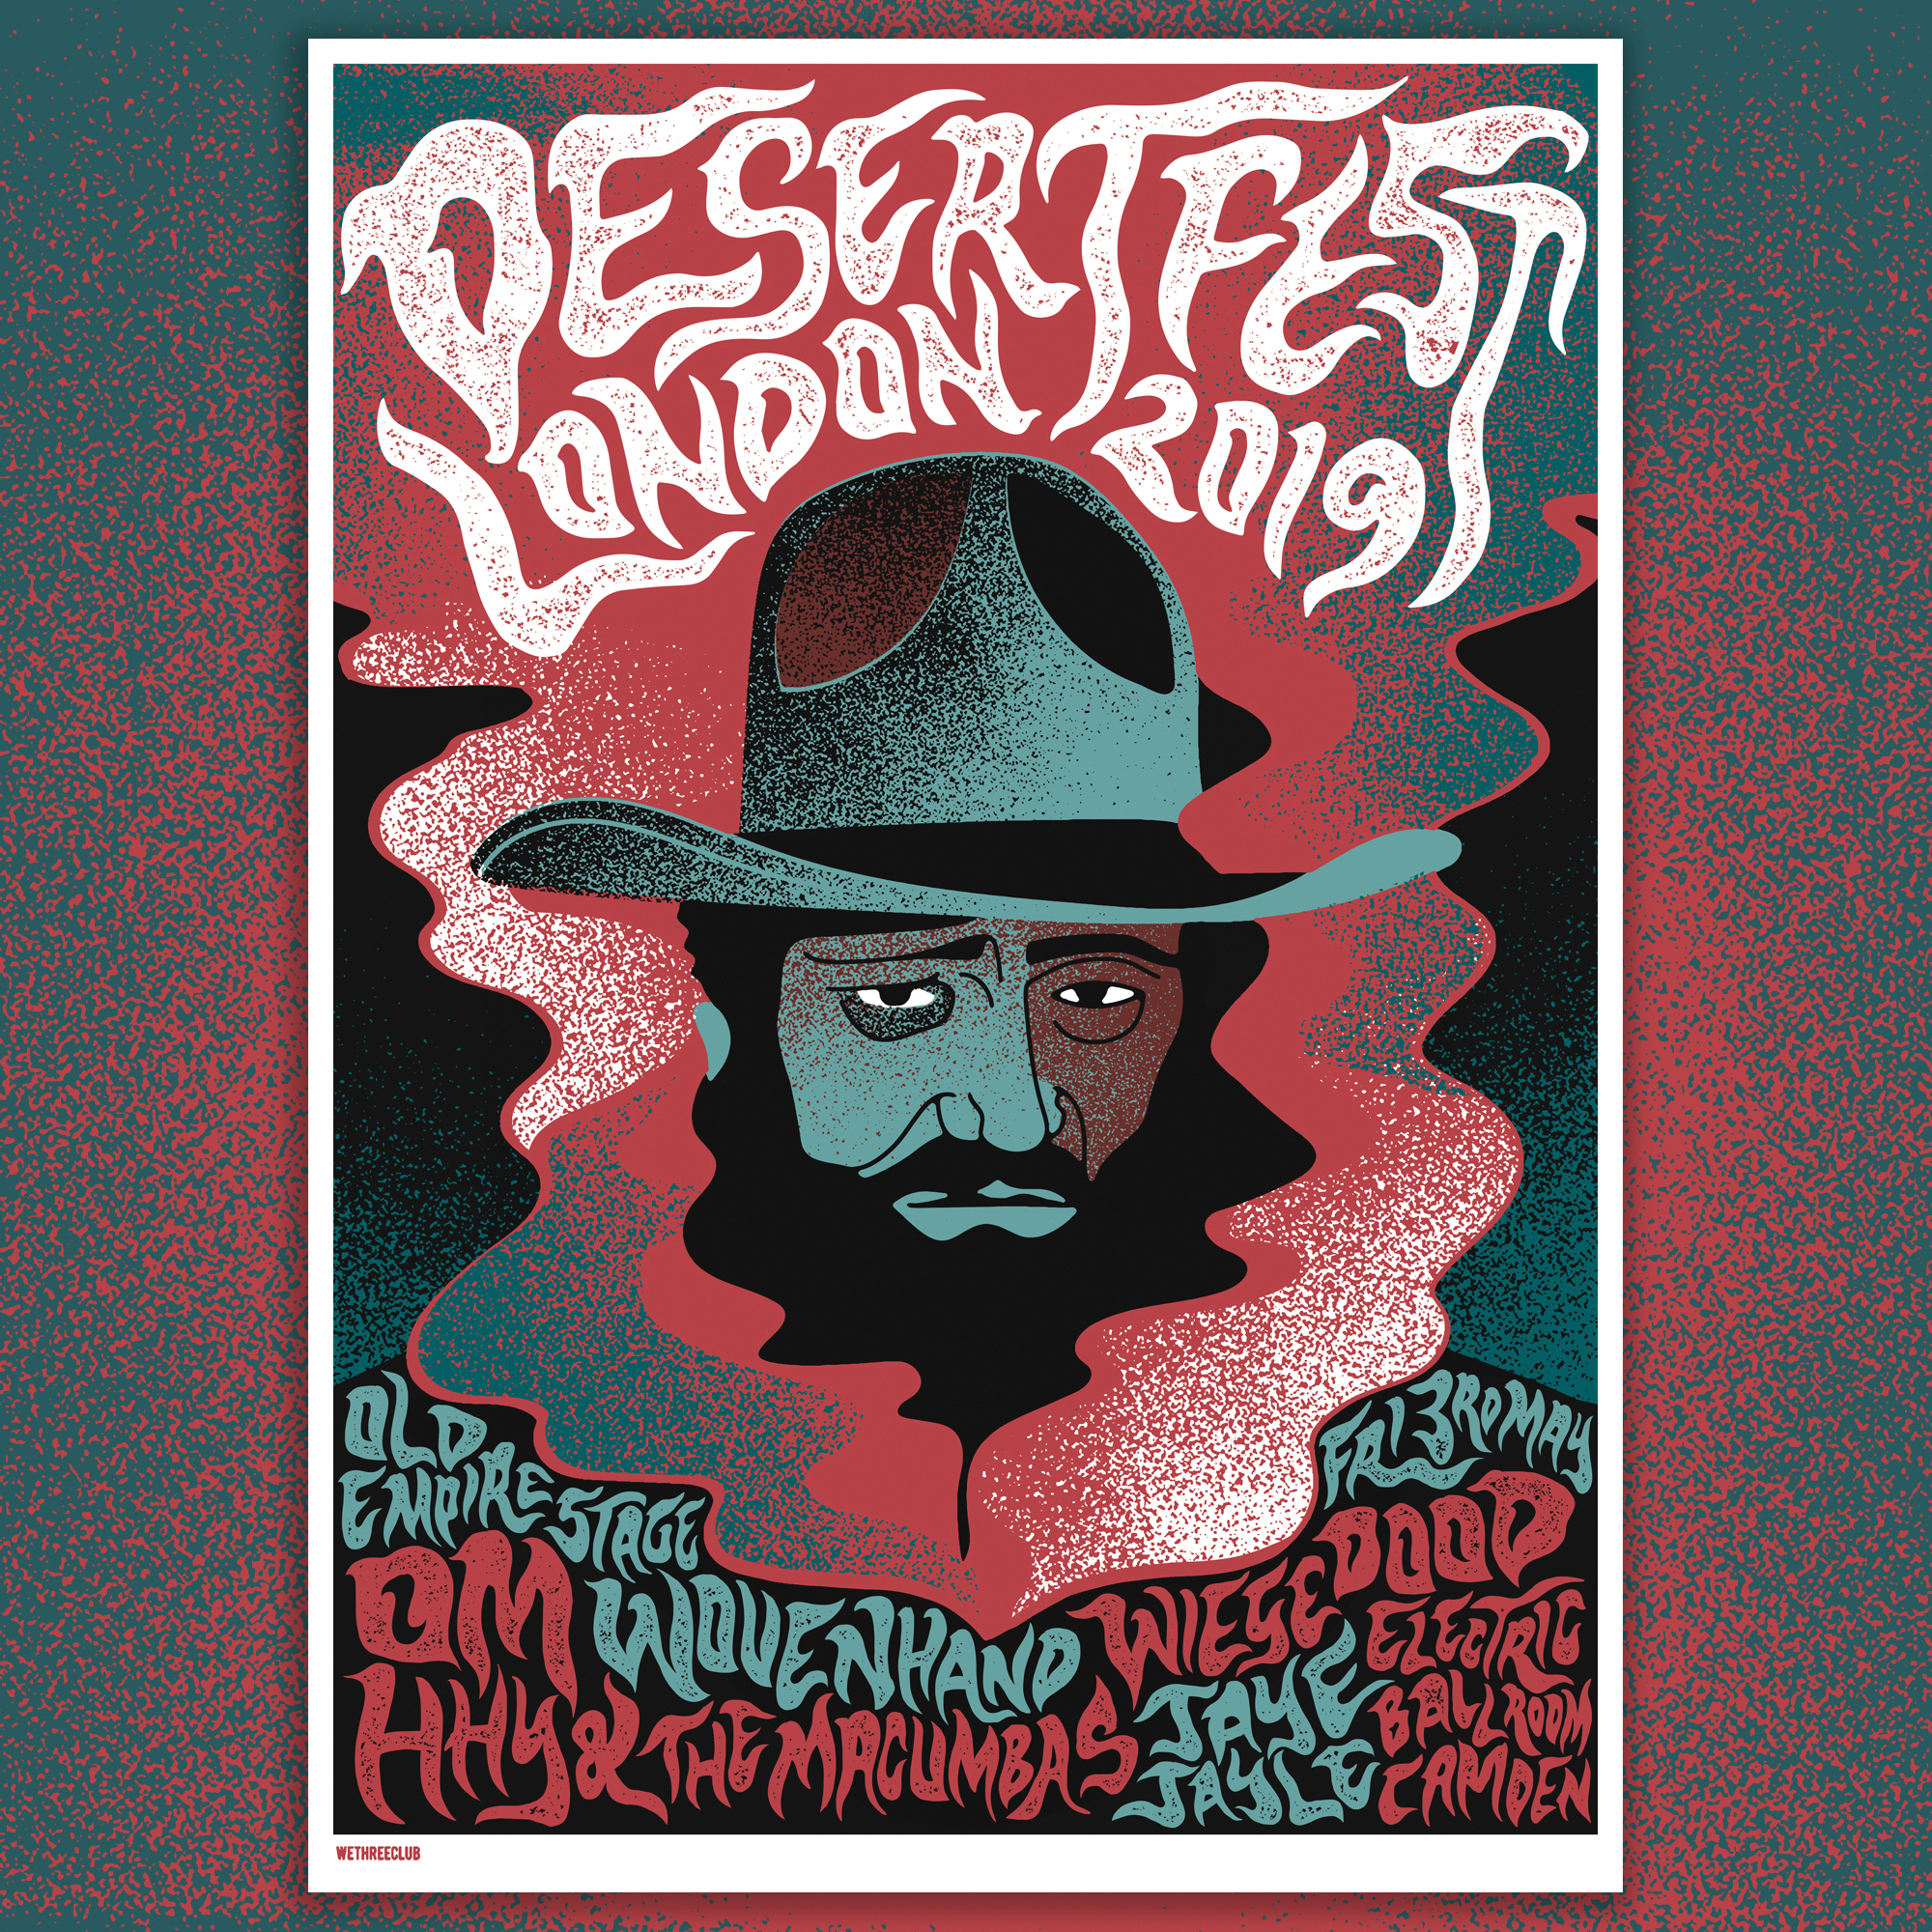 desertfest london 2019 old empire stage